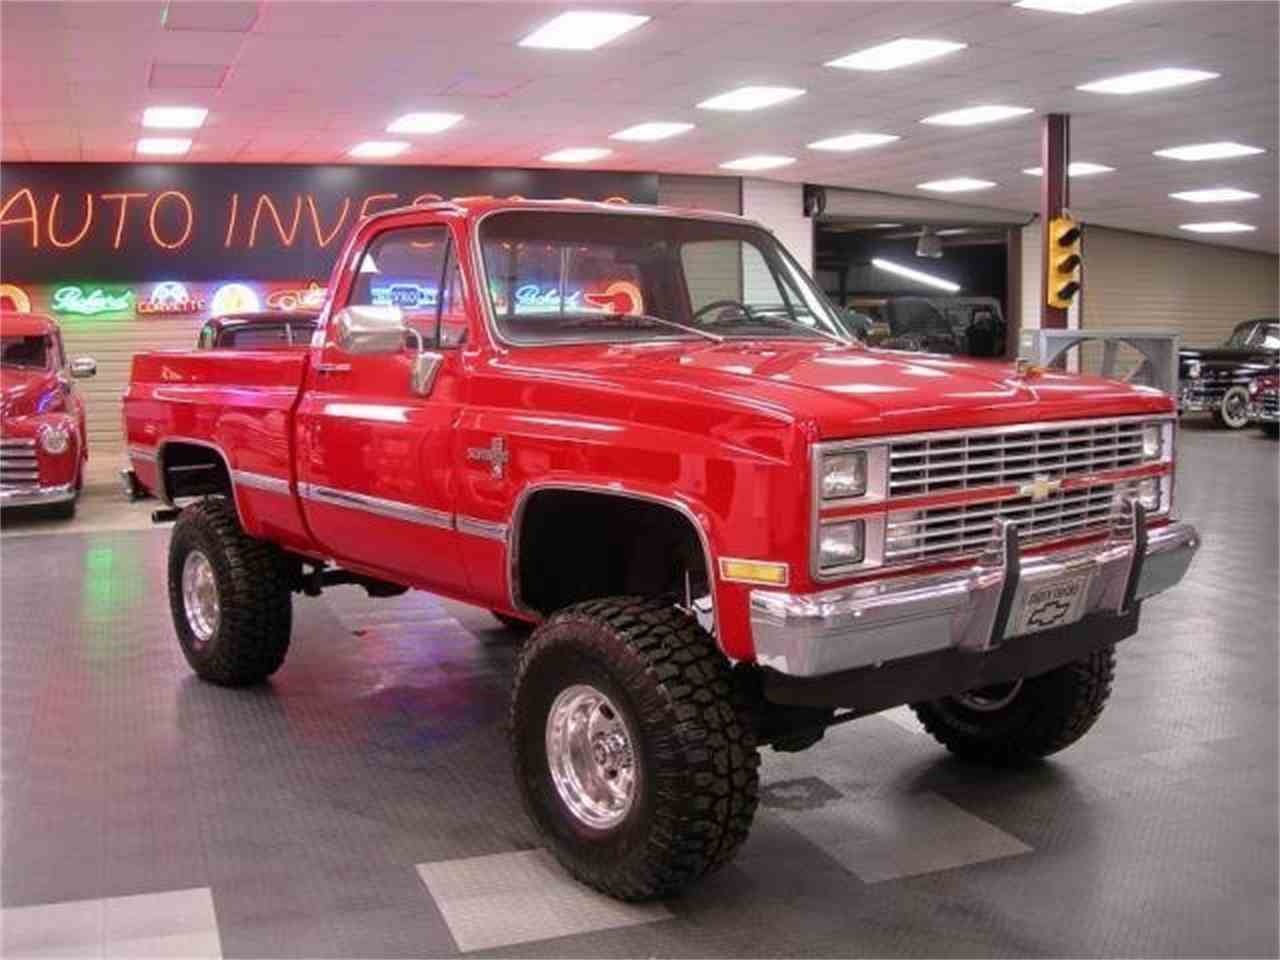 1983 silverado chevrolet 4x4 1500 dothan alabama vehicles buyer inspection seller vehicle resources similar contact located